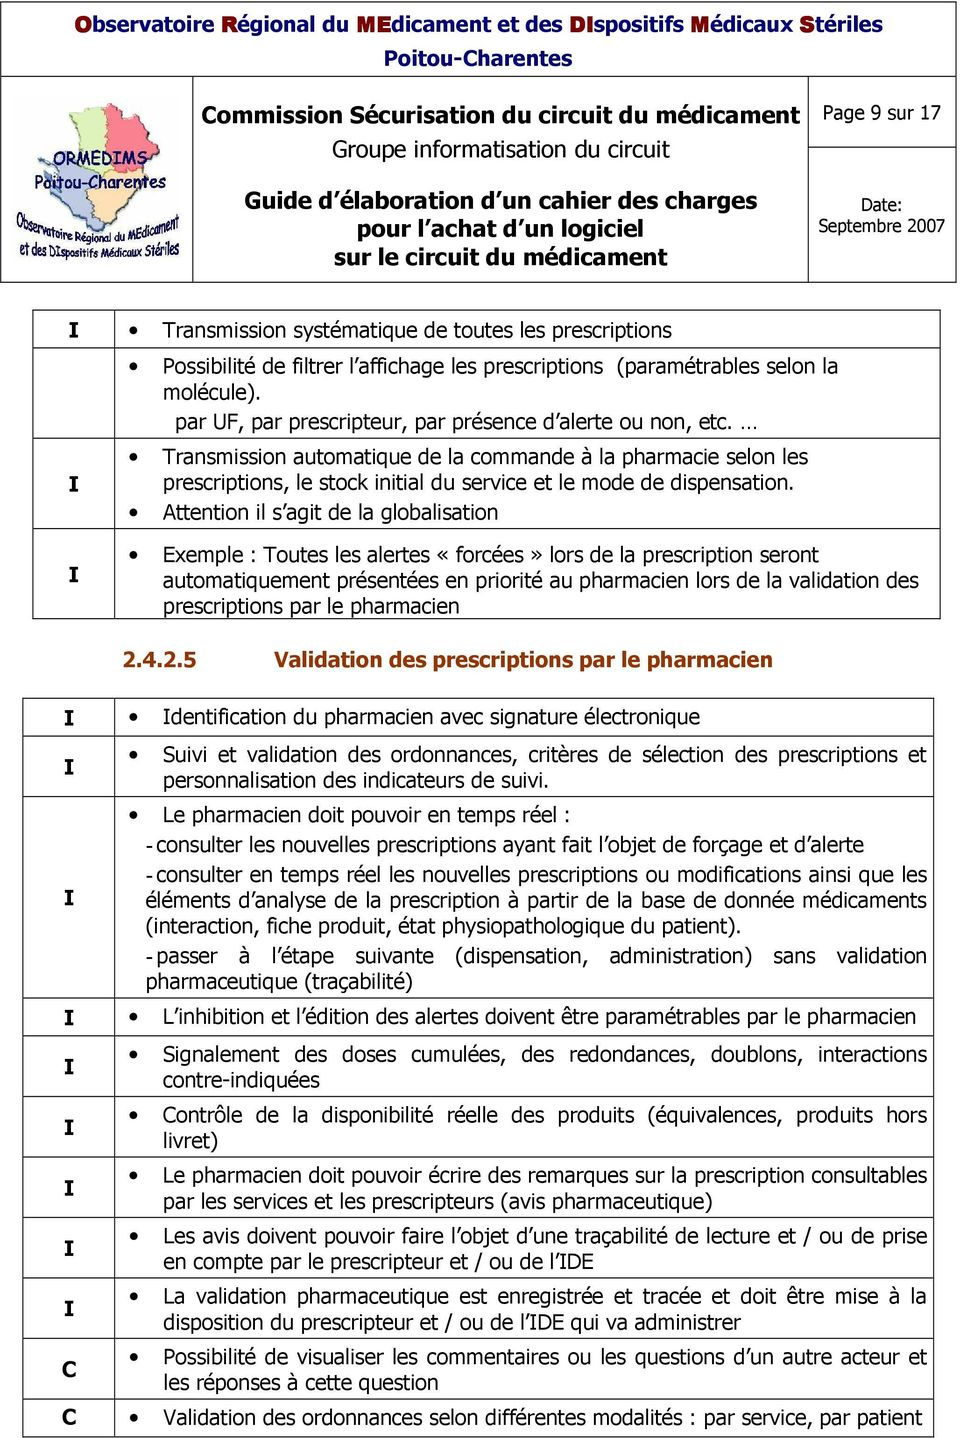 Transmission automatique de la commande à la pharmacie selon les prescriptions, le stock initial du service et le mode de dispensation.